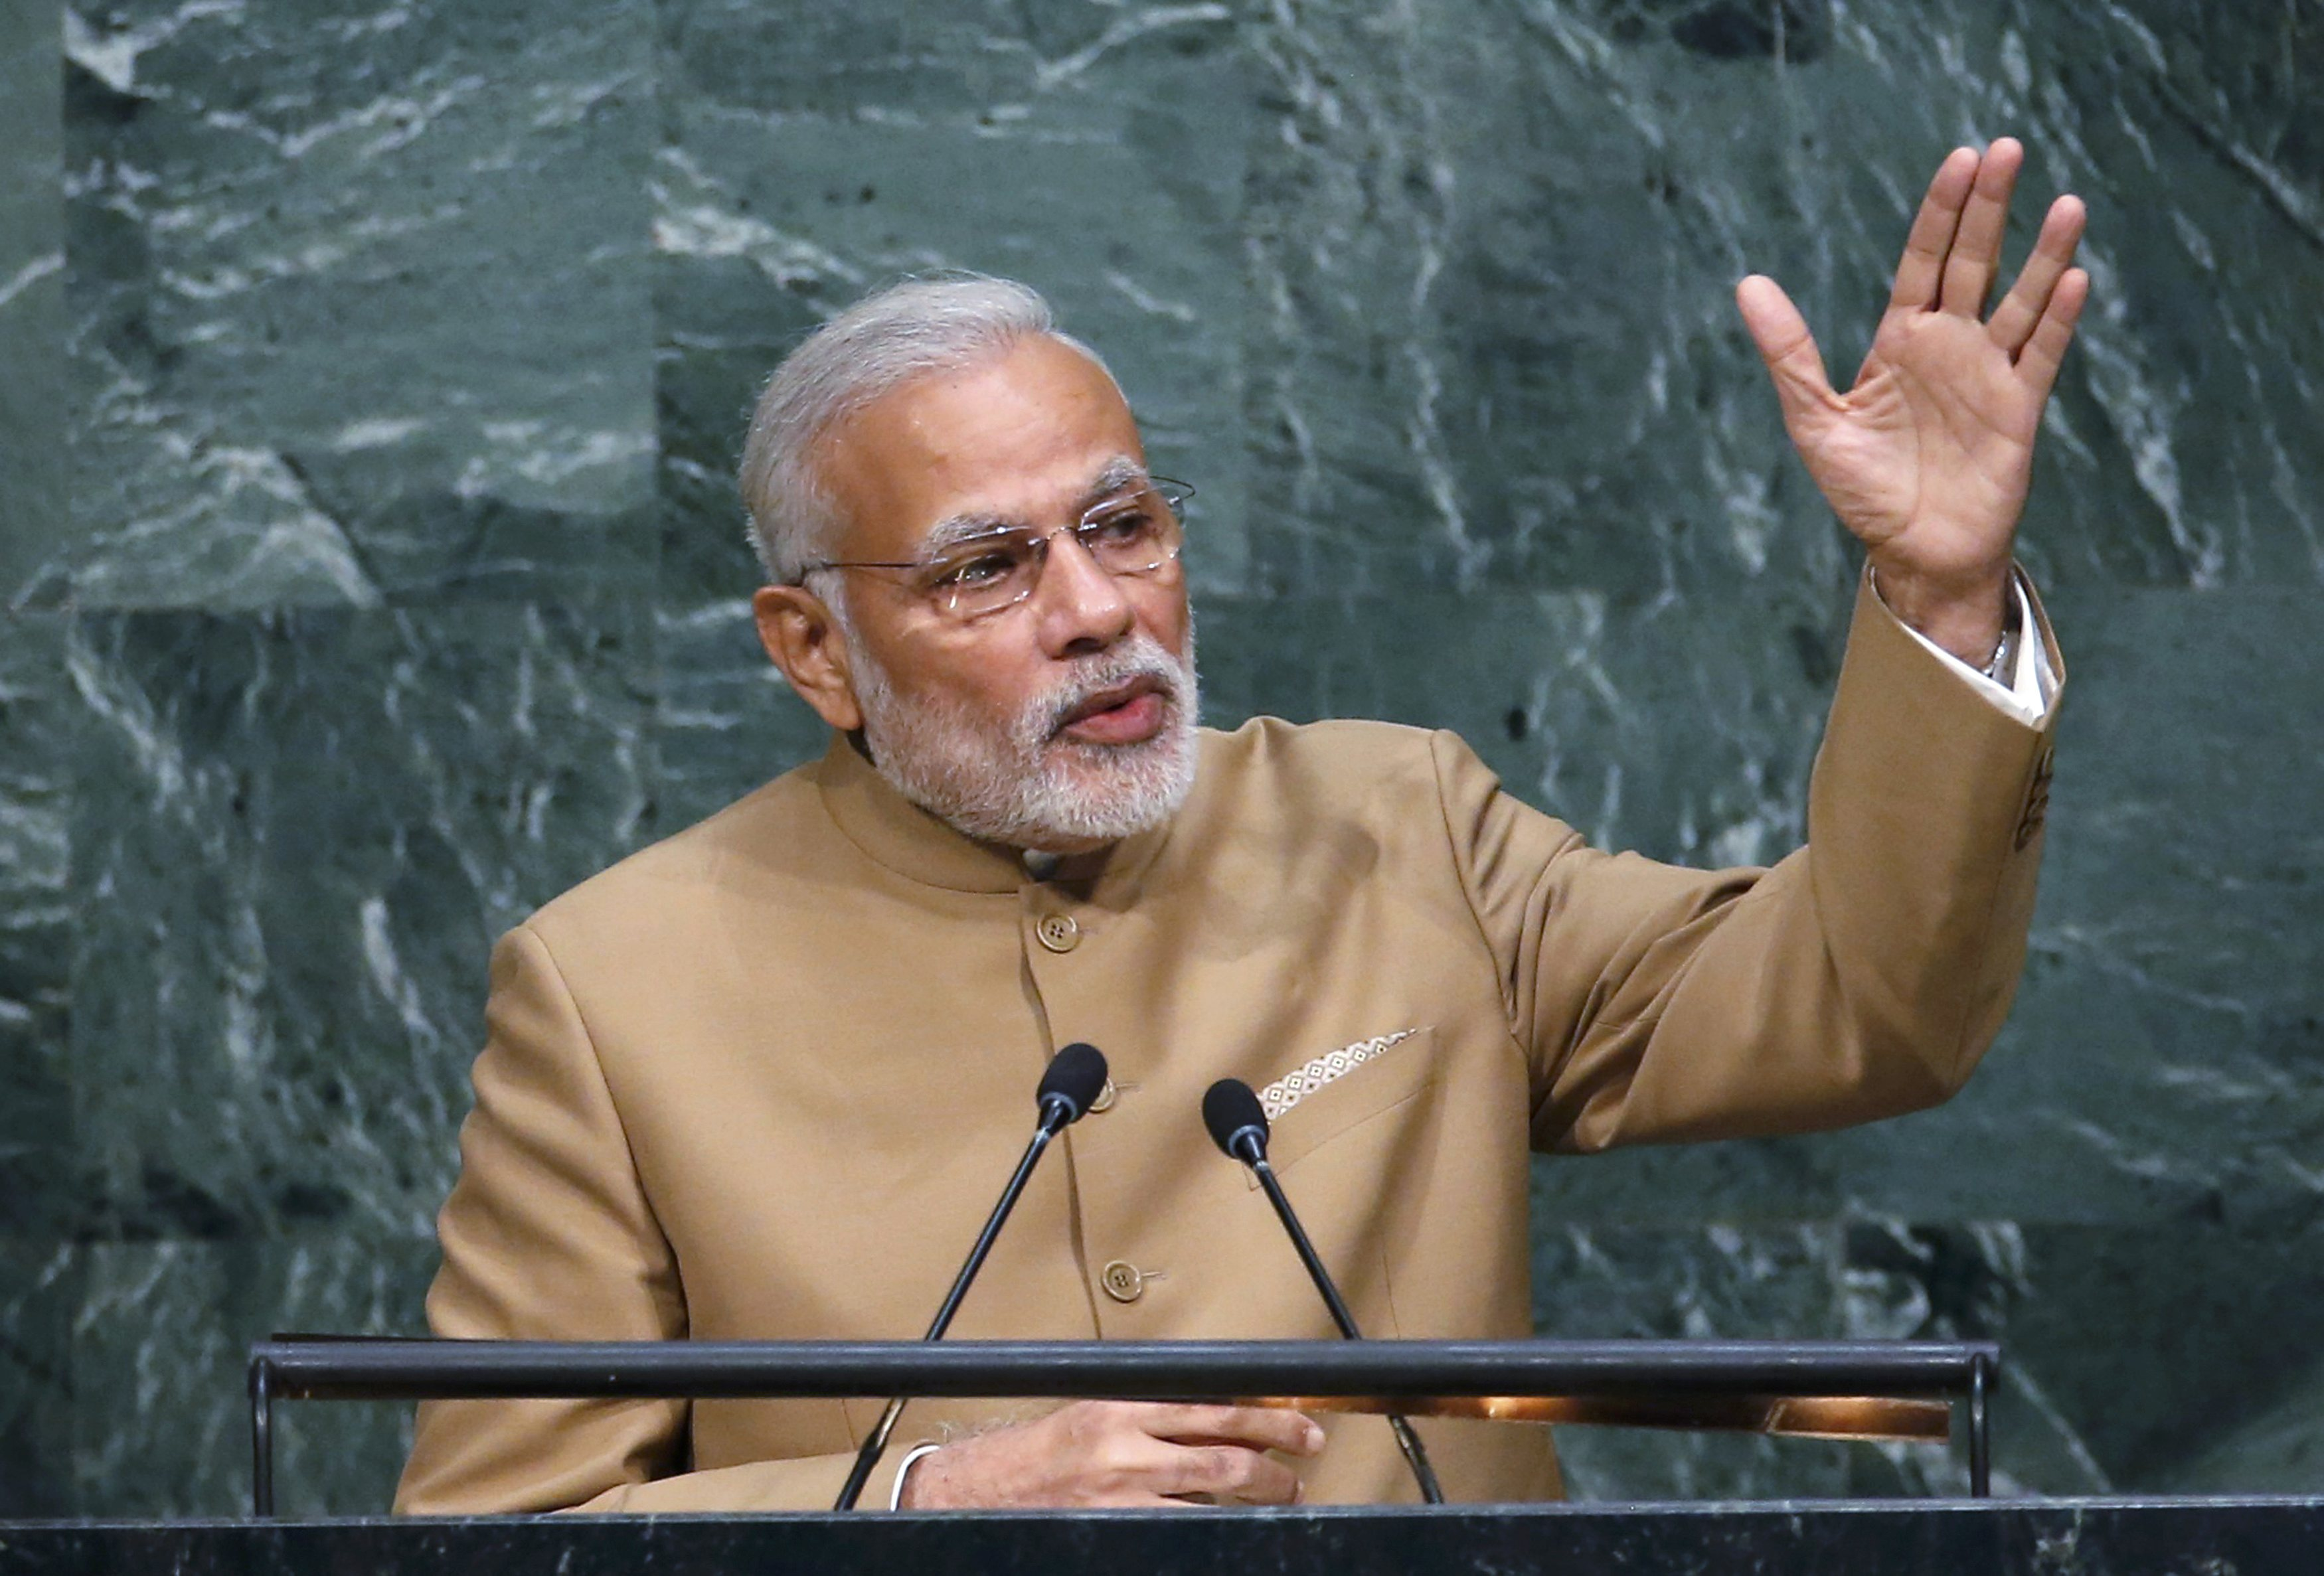 Narendra Modi, Prime Minister of India, addresses a plenary meeting of the United Nations Sustainable Development Summit 2015 at United Nations headquarters in Manhattan, New York, September 25, 2015. Photo: Reuters